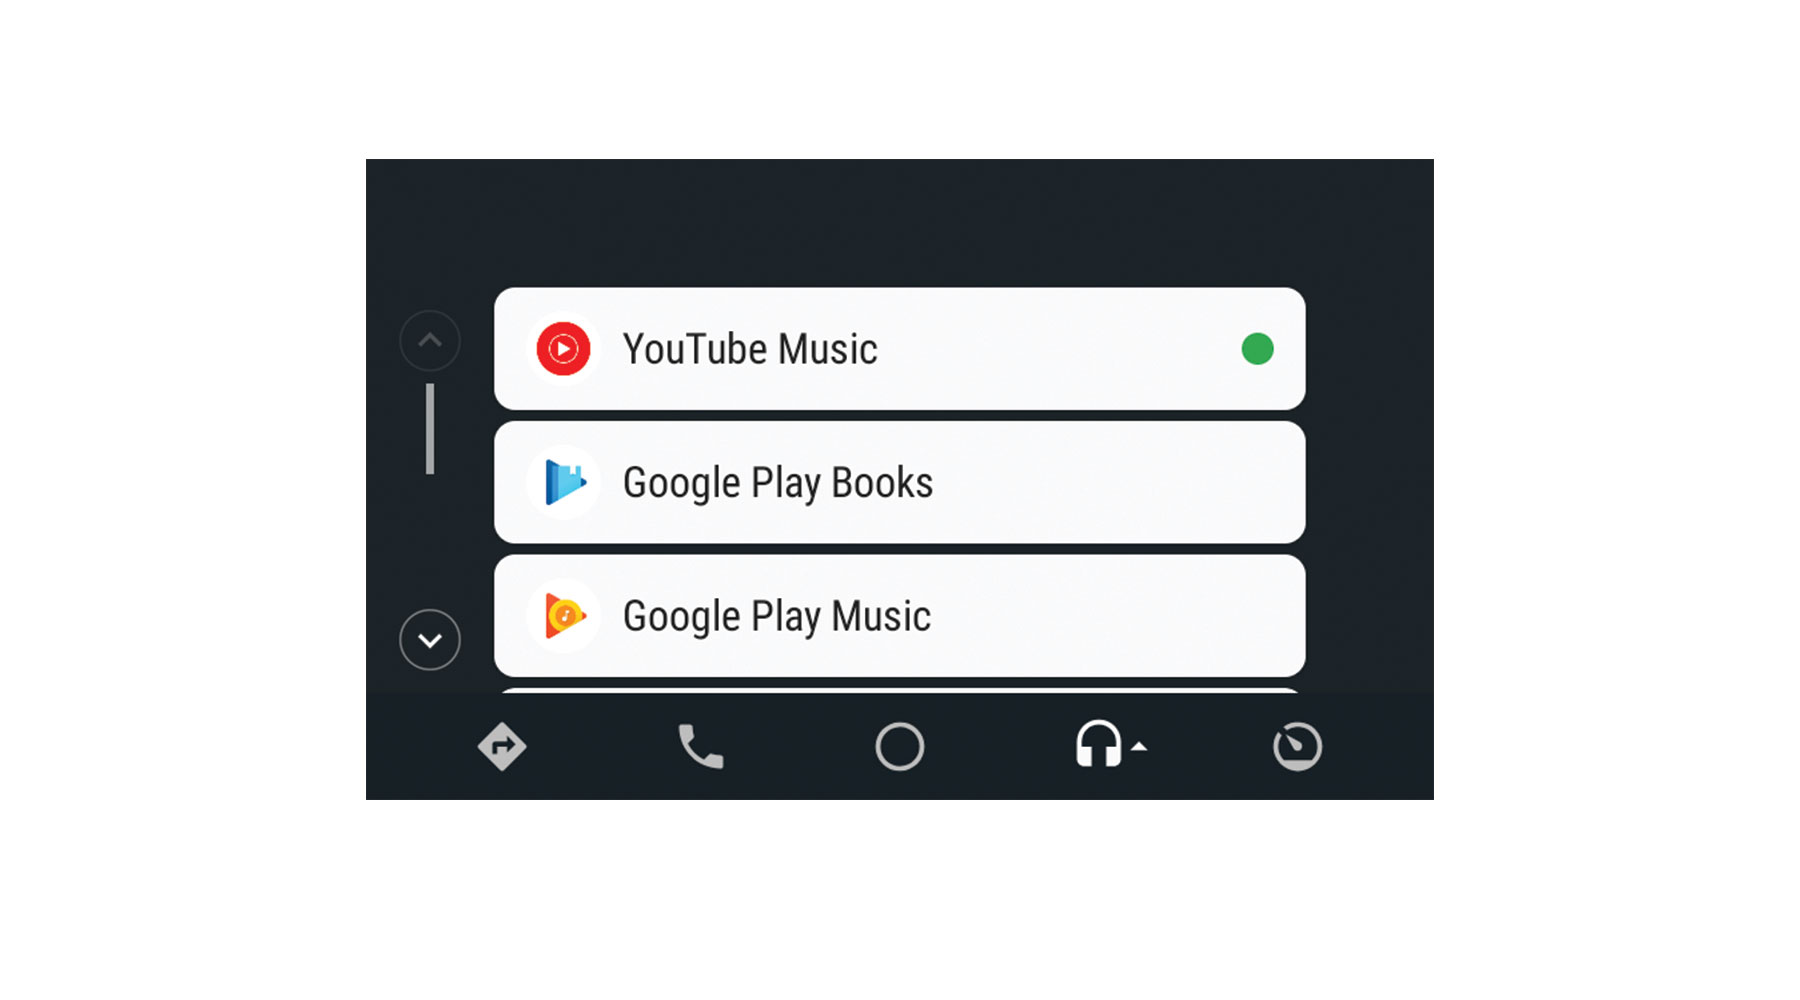 YouTube Music Makes Its Way to Android Auto - Connected Car Life